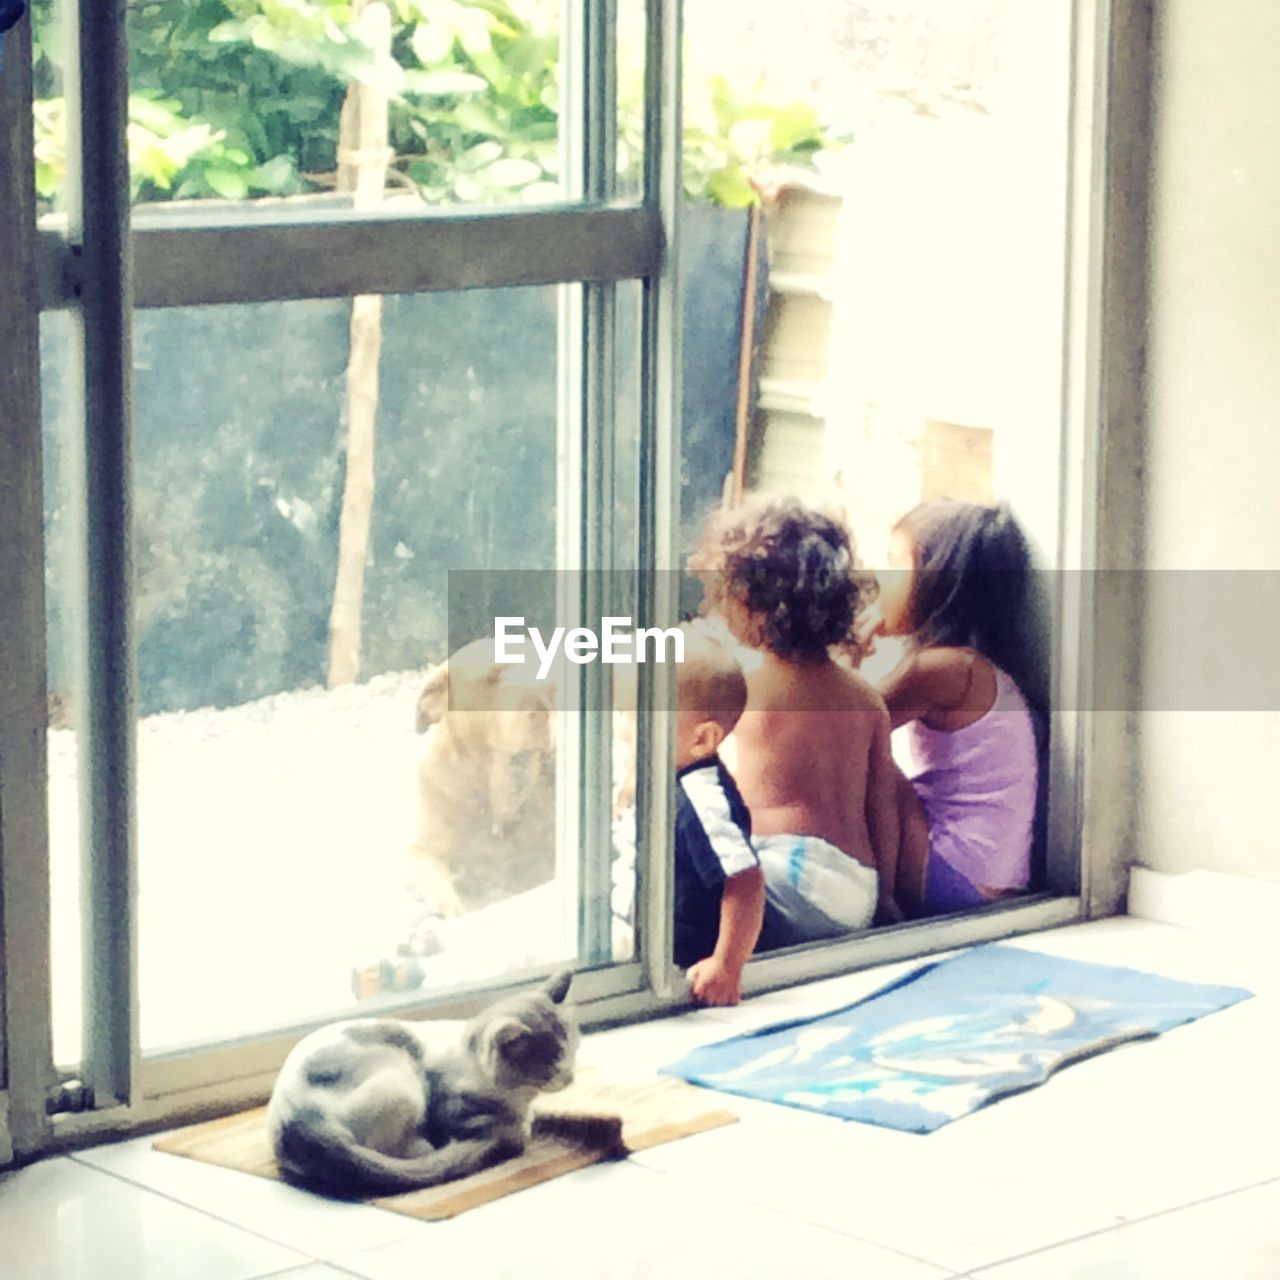 dog, pets, domestic animals, technology, one animal, indoors, window, real people, animal themes, looking through window, wireless technology, friendship, casual clothing, sitting, mammal, bonding, day, home interior, relaxation, one person, young adult, people